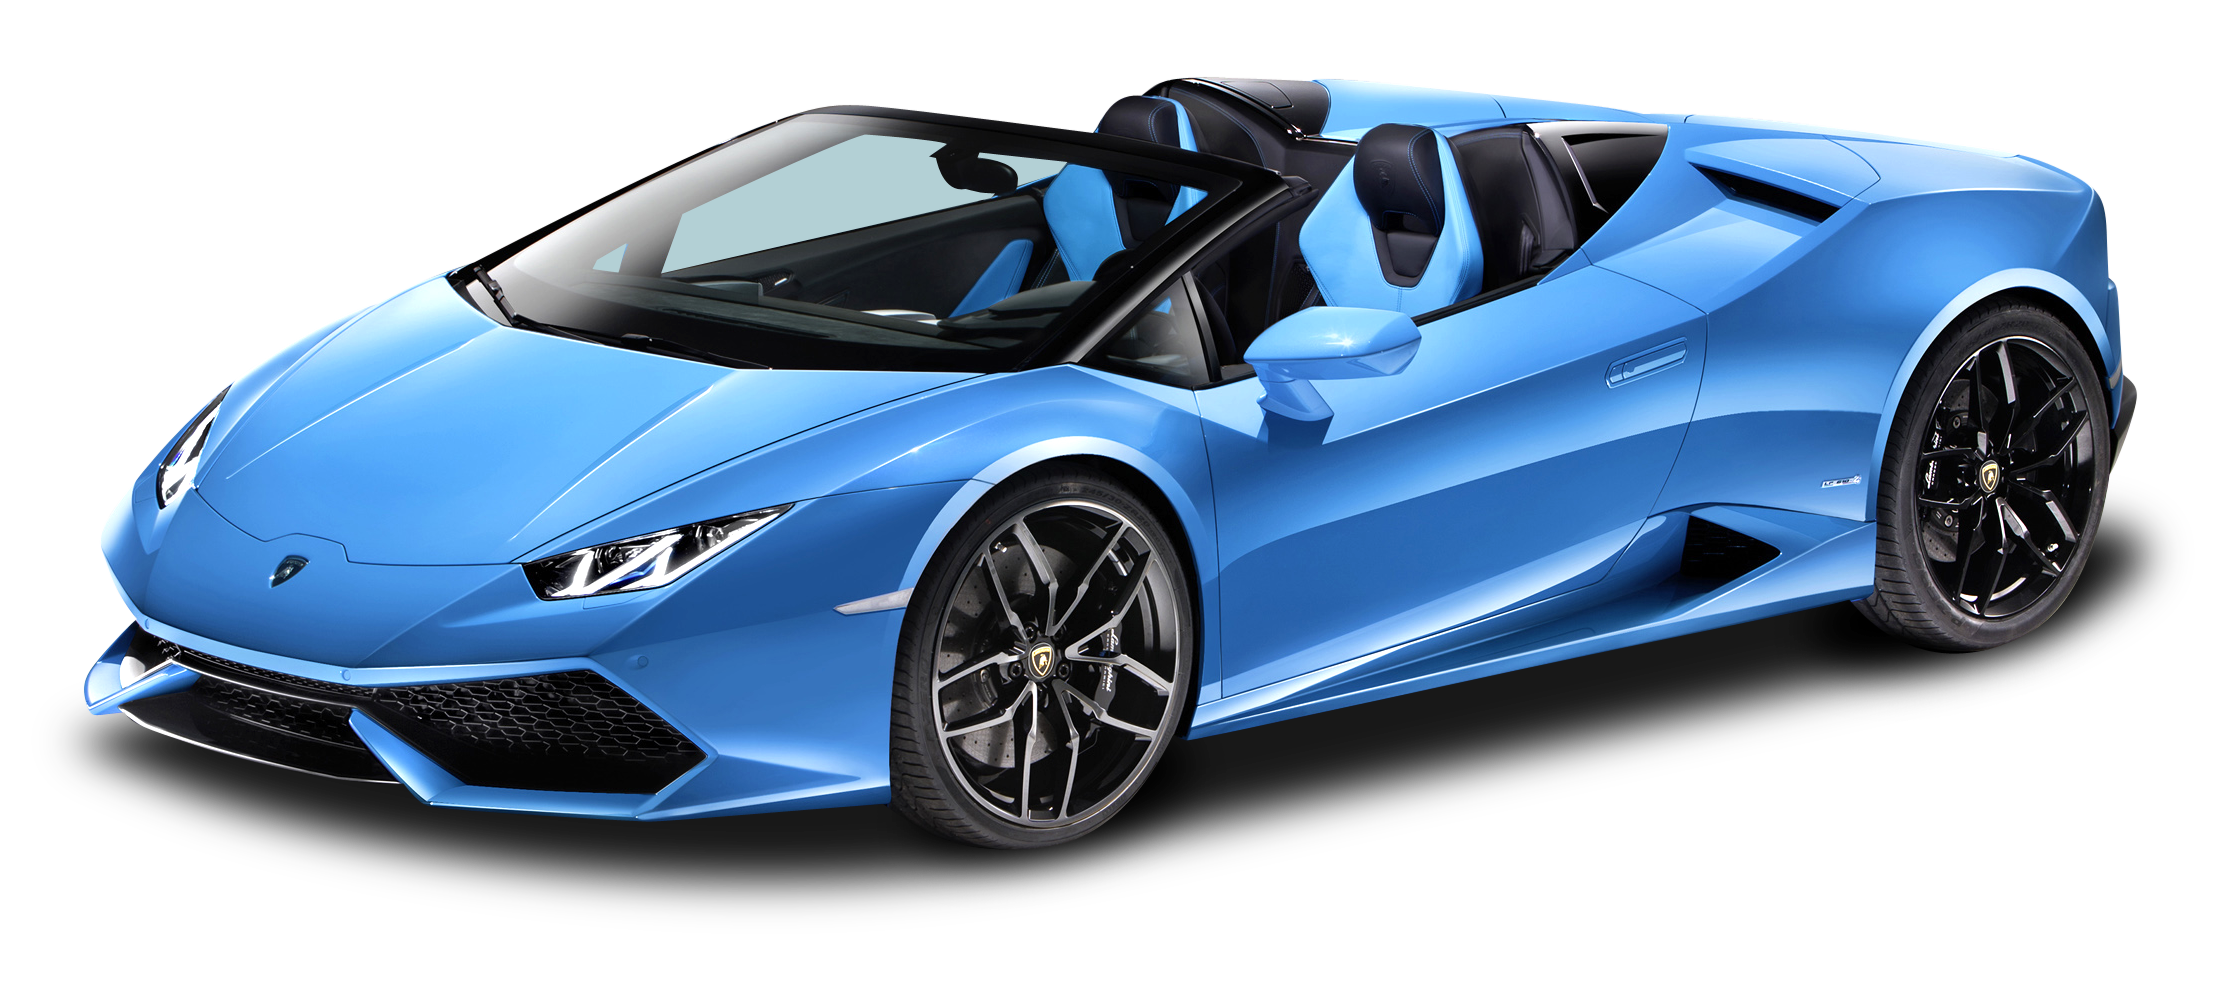 lamborghini hurac n spyder lp 610 4 2016 lamborghini huracan lp 610 4 spyder 3 wallpaper hd car. Black Bedroom Furniture Sets. Home Design Ideas